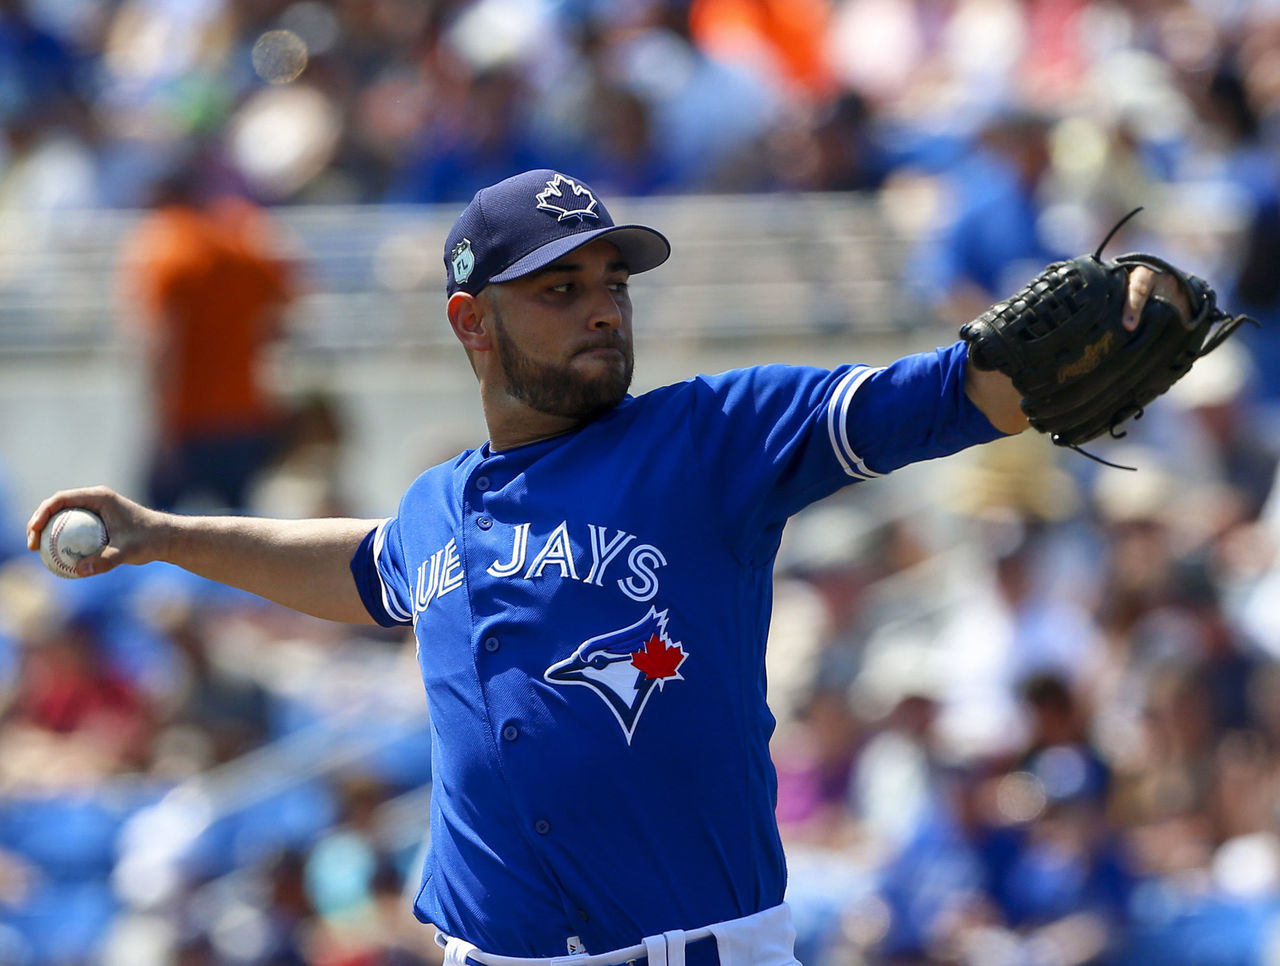 Cropped 2017 03 22t193336z 235028385 nocid rtrmadp 3 mlb spring training detroit tigers at toronto blue jays